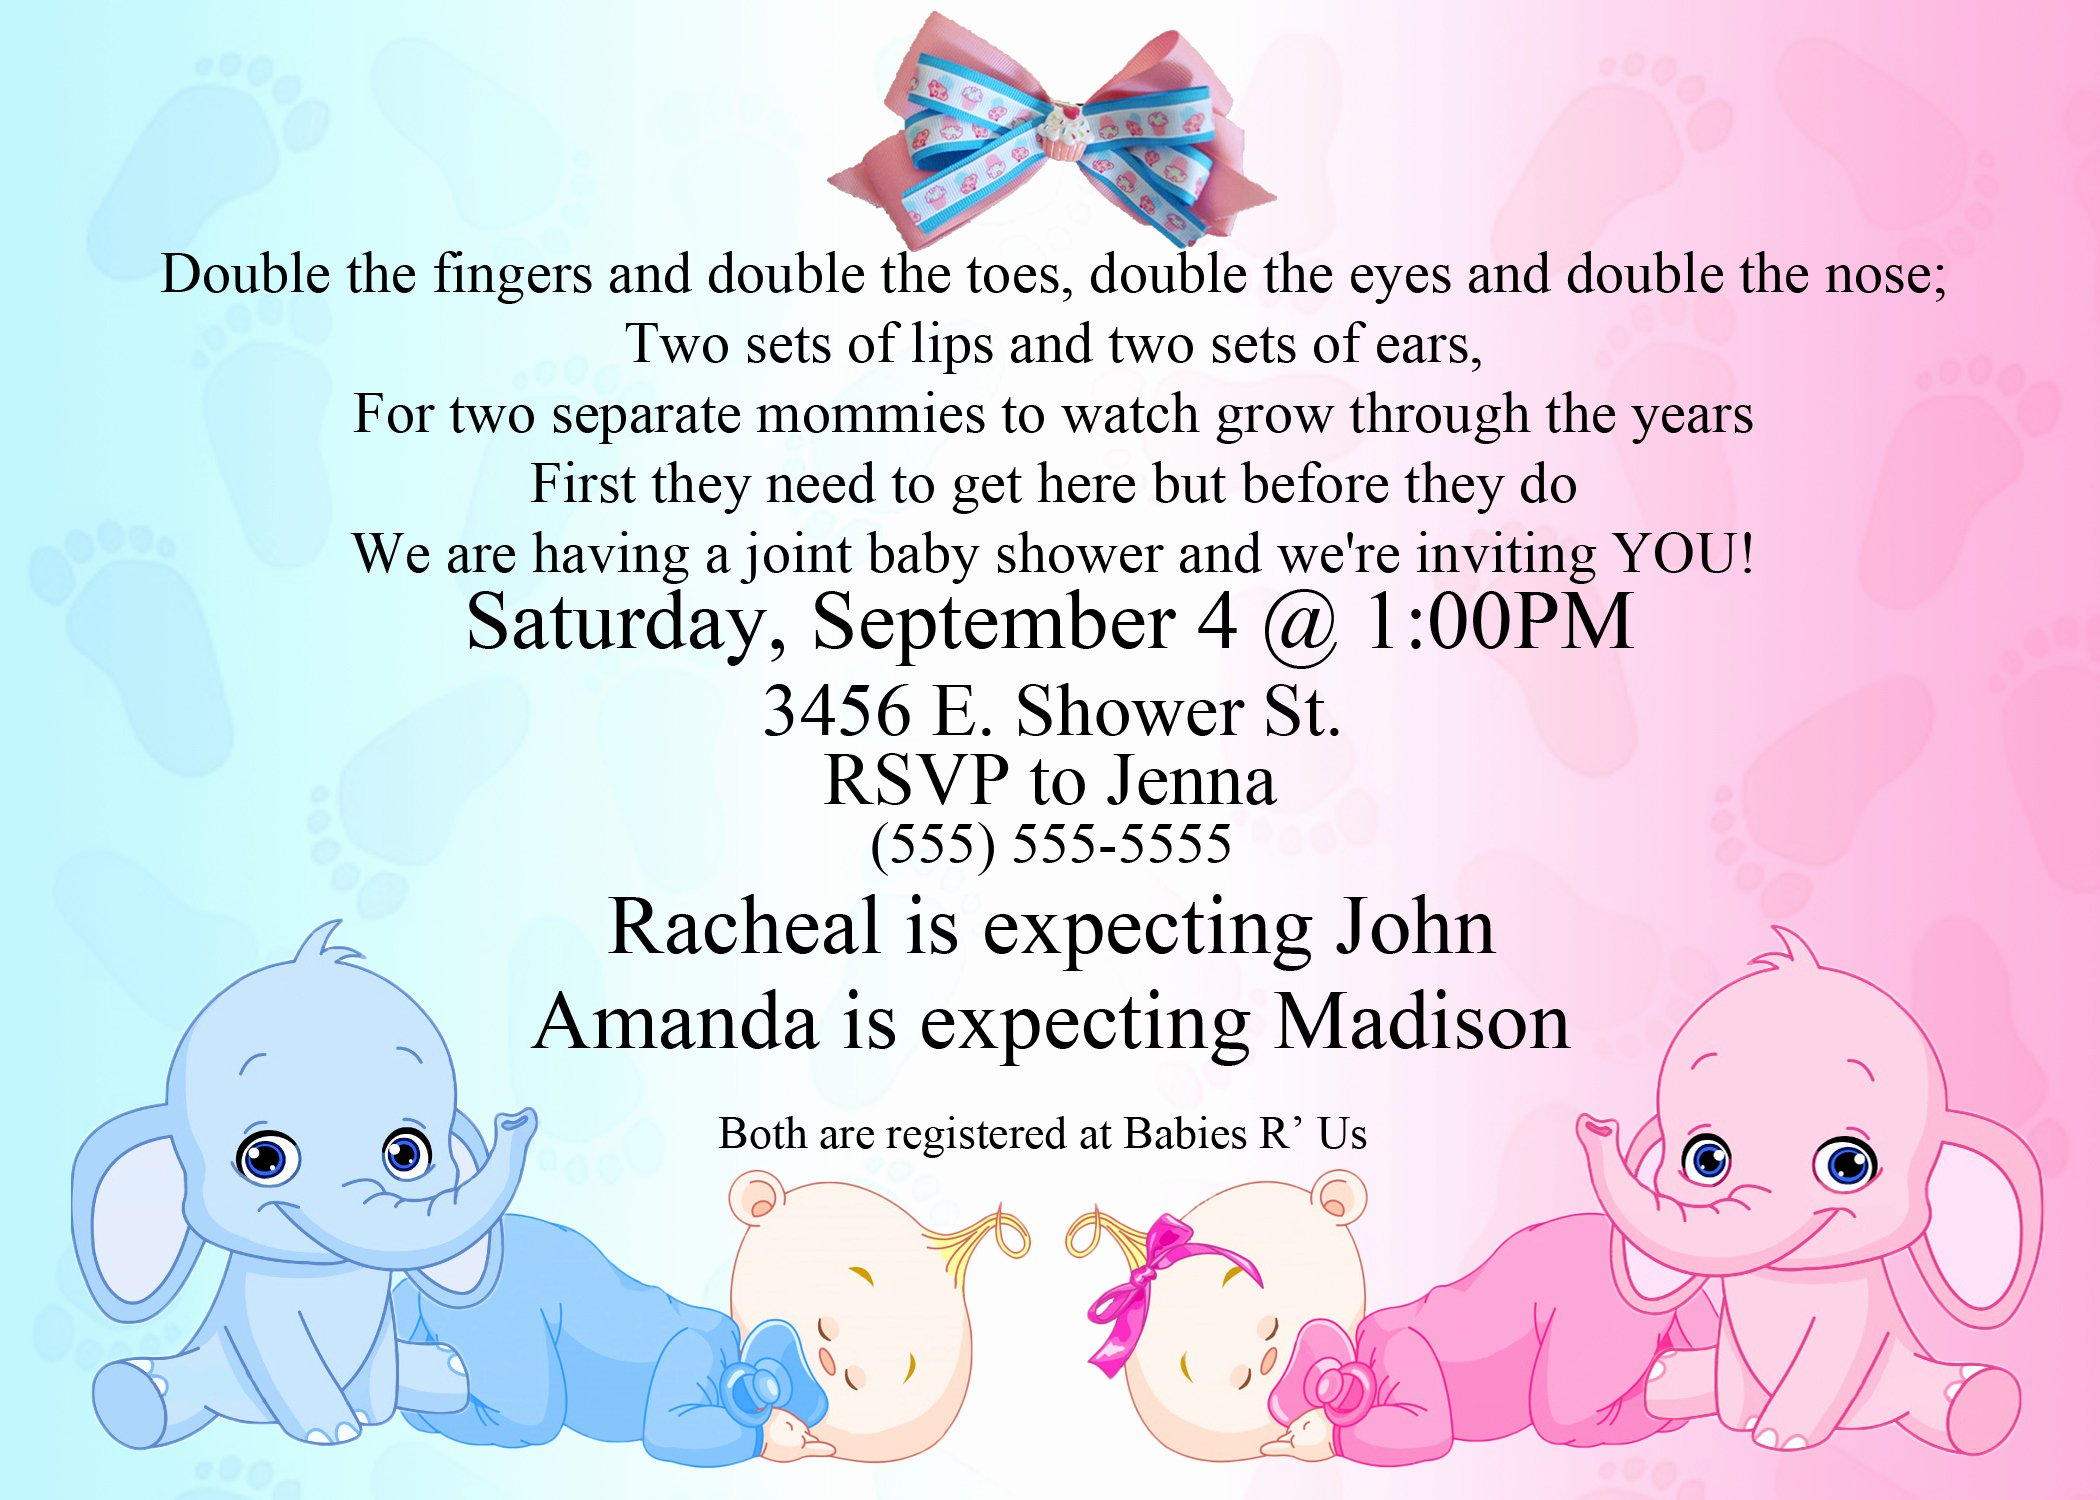 Free Baby Shower Templates Unique Baby Shower Invitation Ideas for Twins